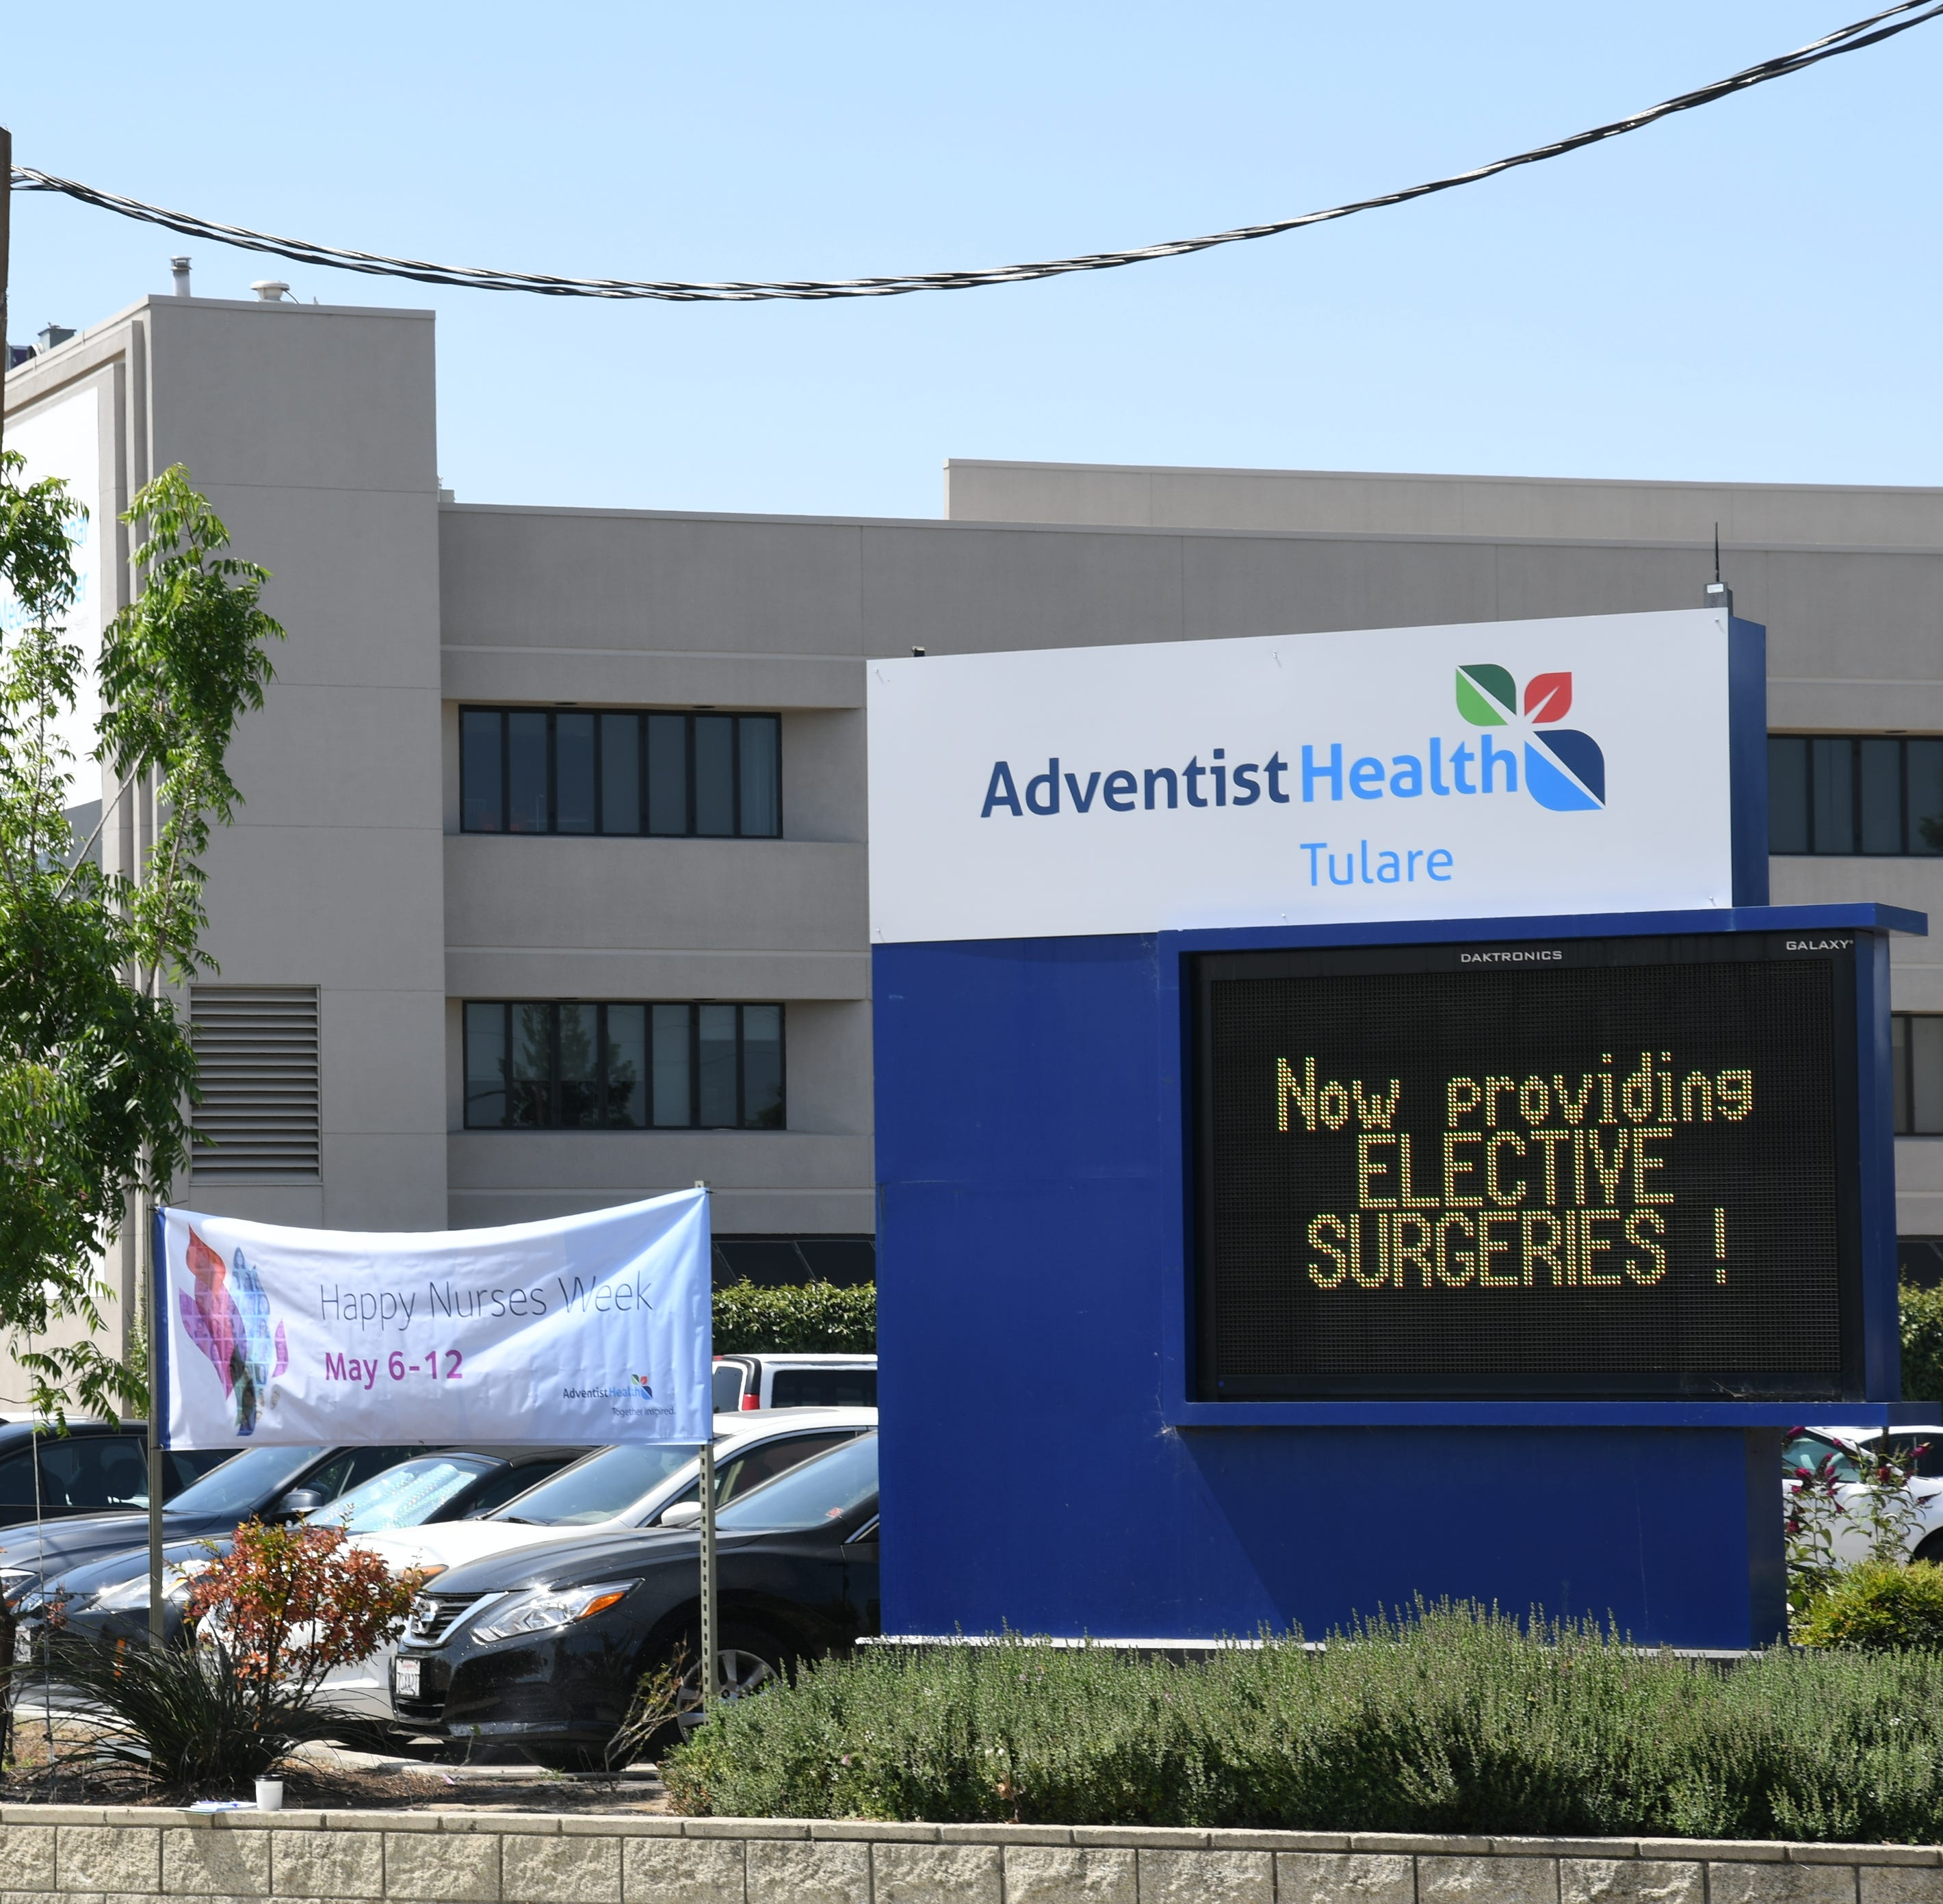 Adventist Health Tulare unveils new sign, logo. Is it enough to rebuild patients' trust?